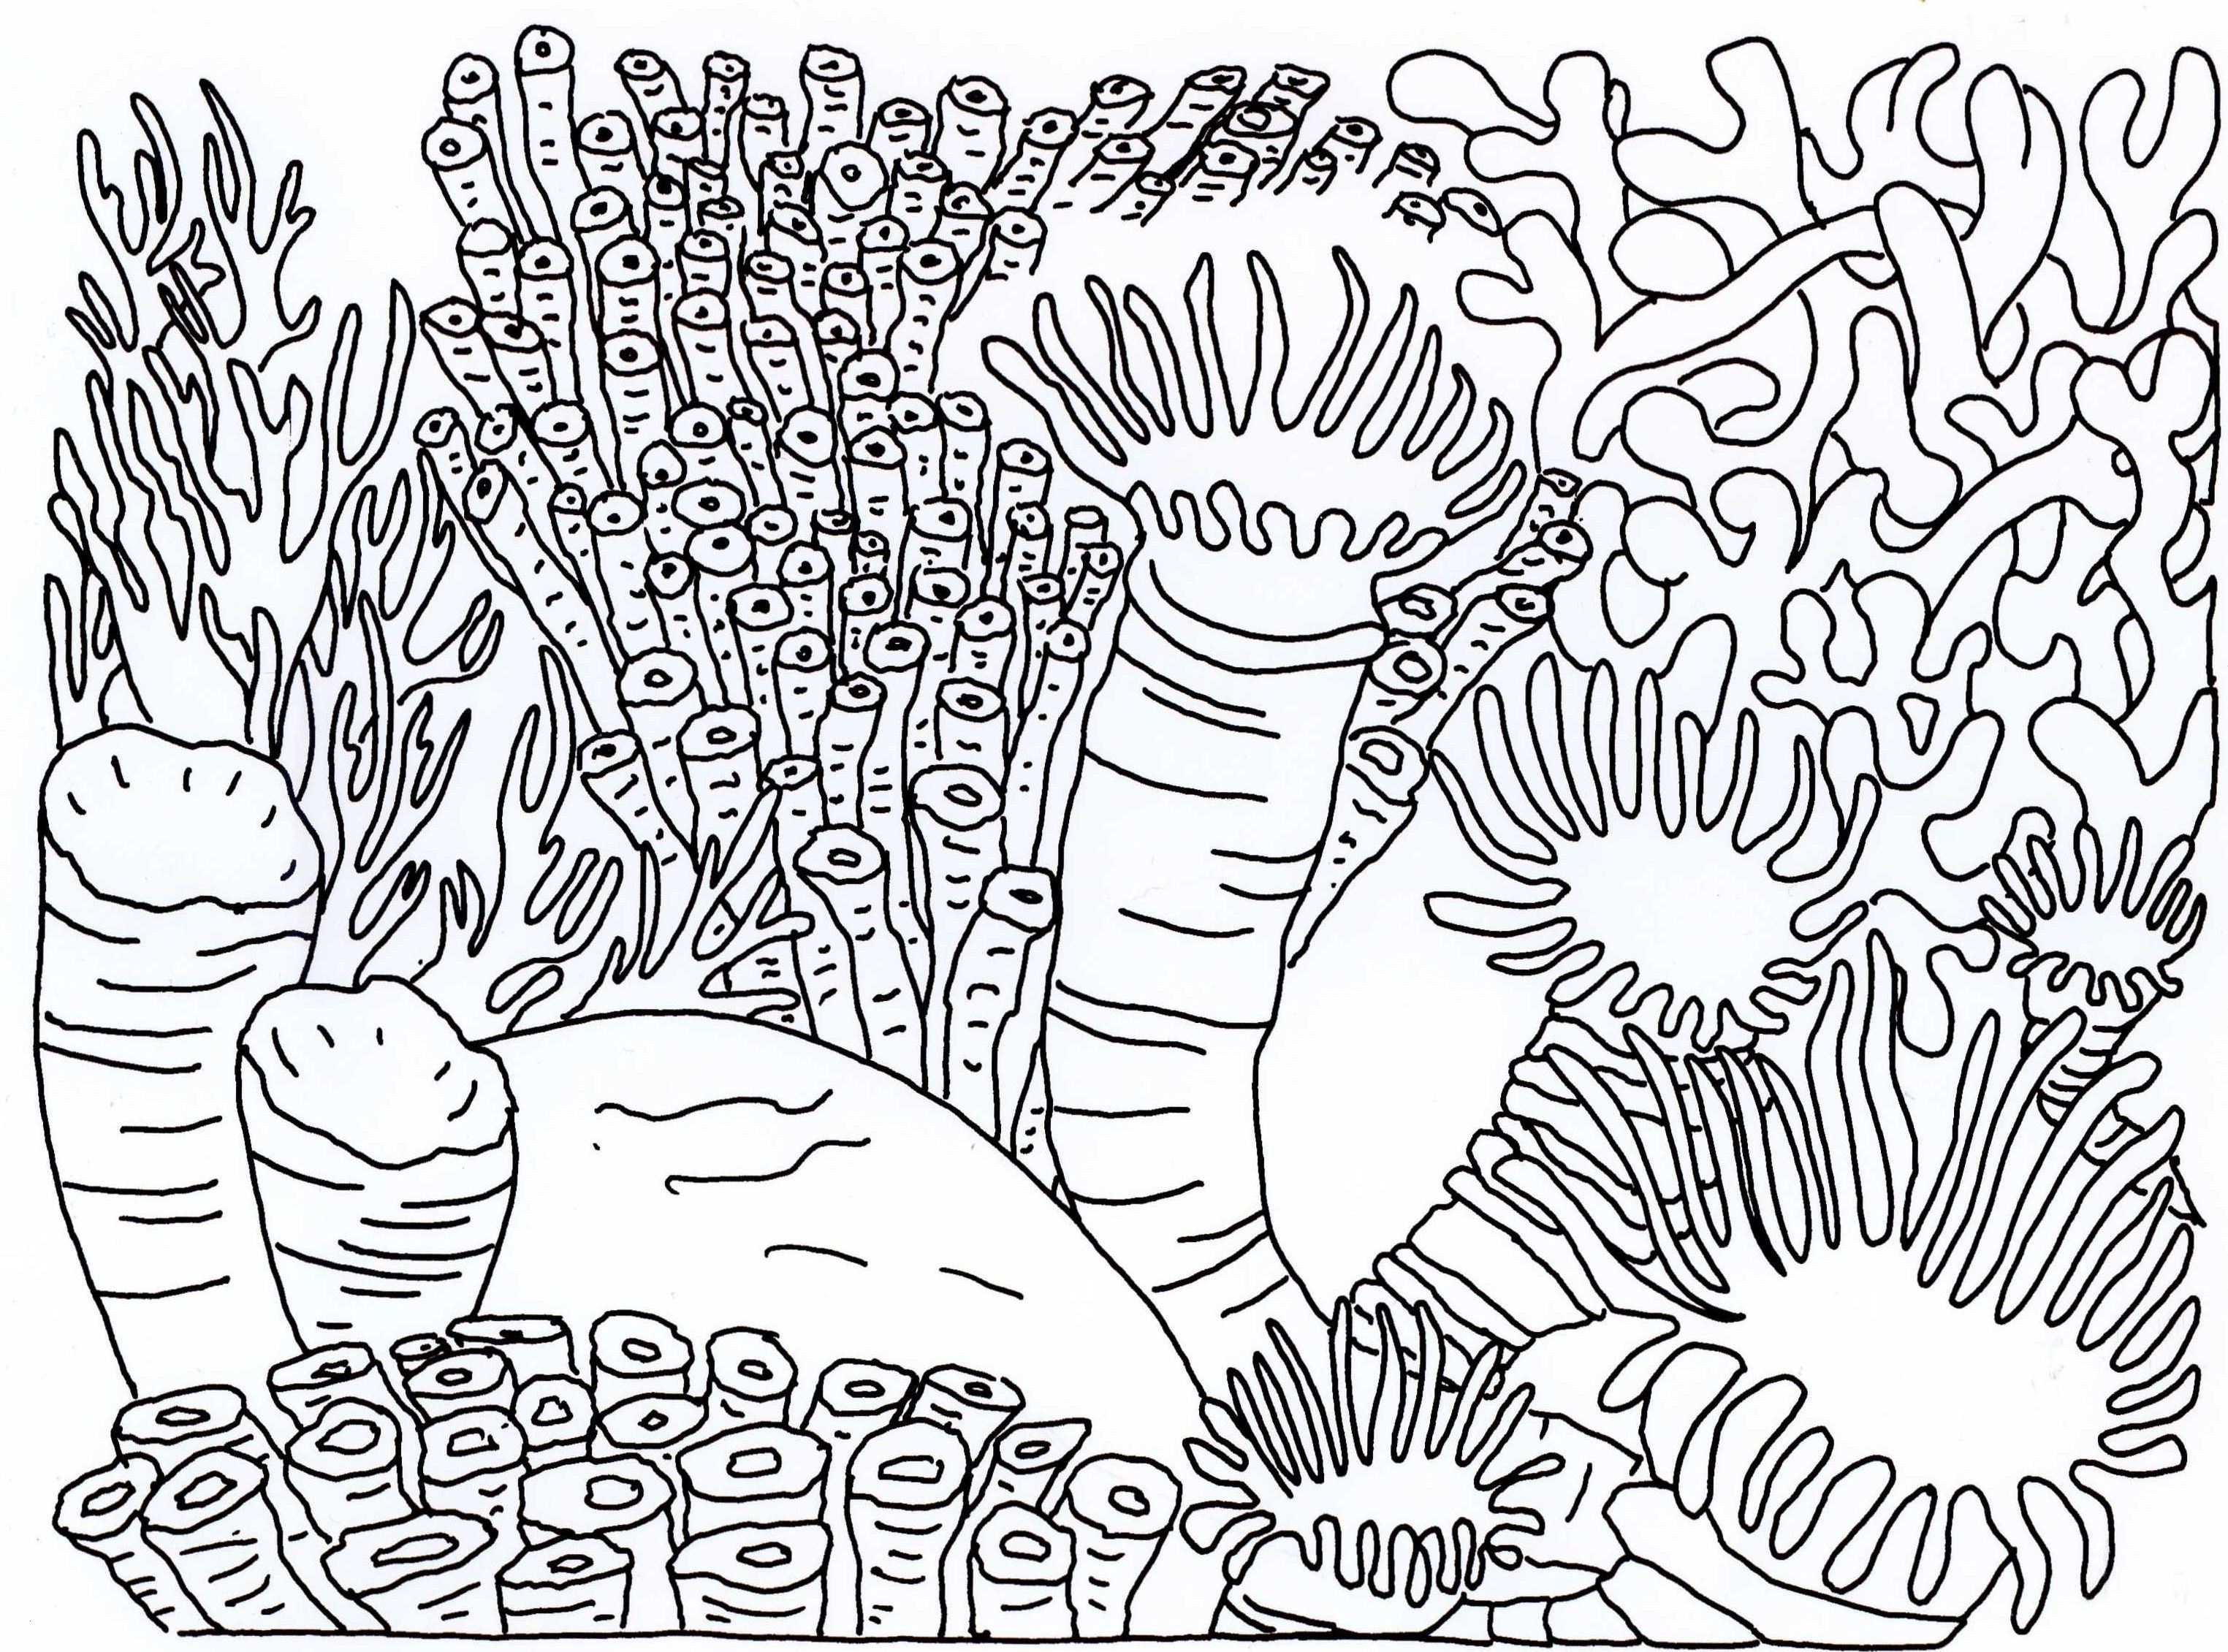 Coral Reefs Coloring Pages  Collection 15h - Save it to your computer